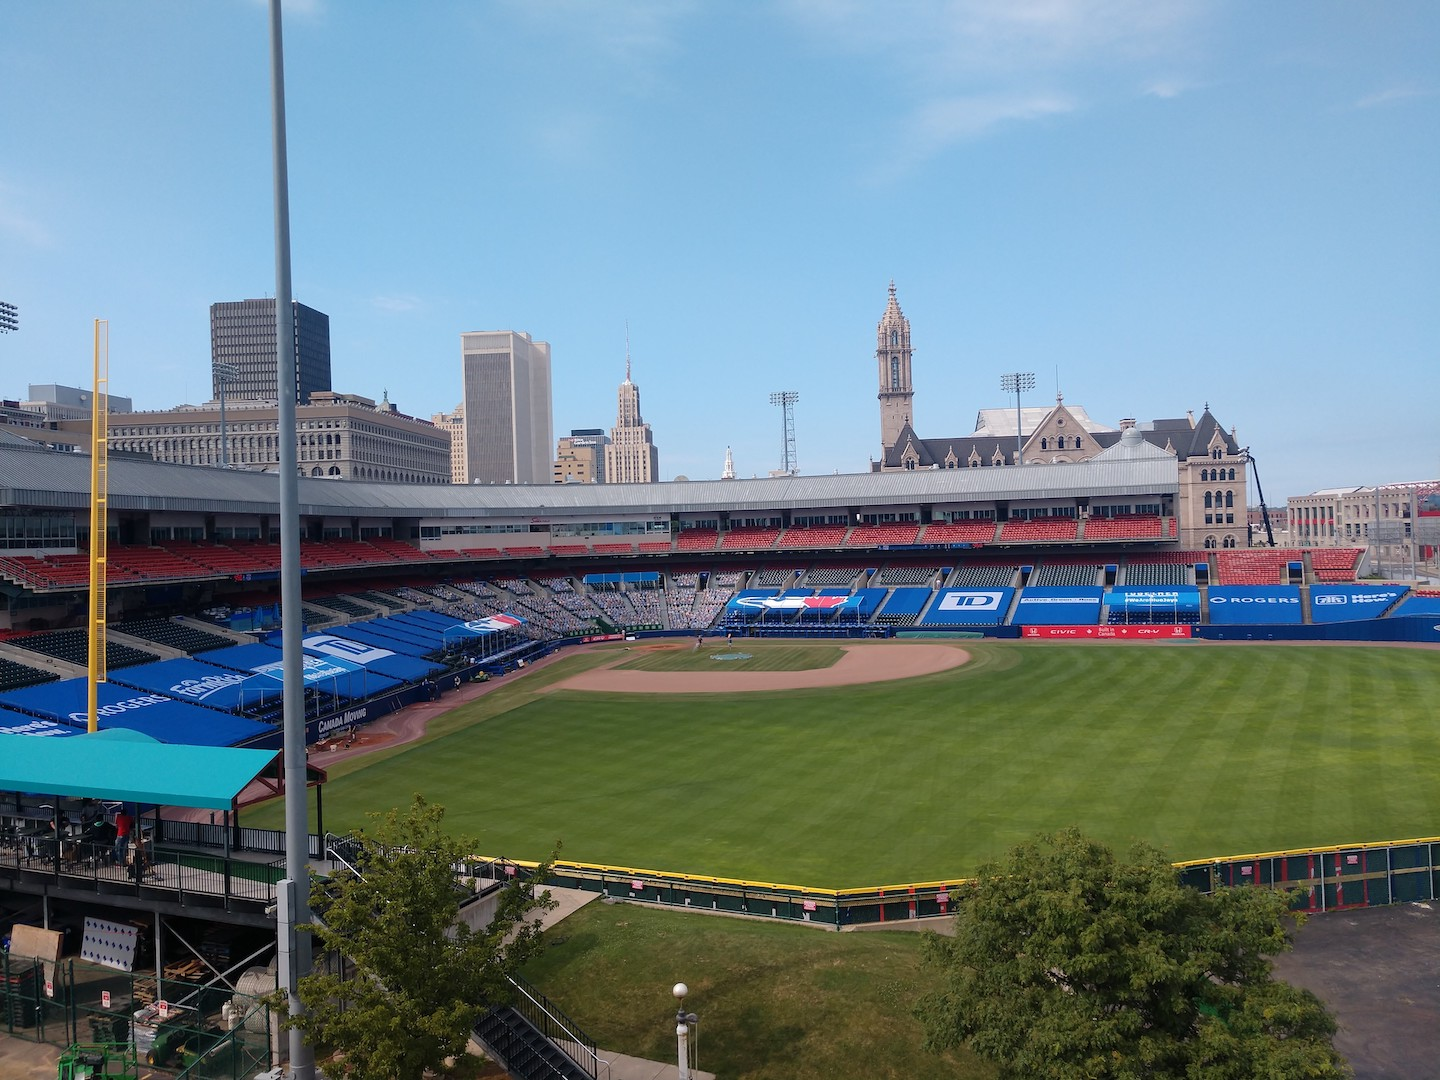 Buffalo's Sahlen Field - the Toronto Blue Jays home away from home for the 2020 MLB season.